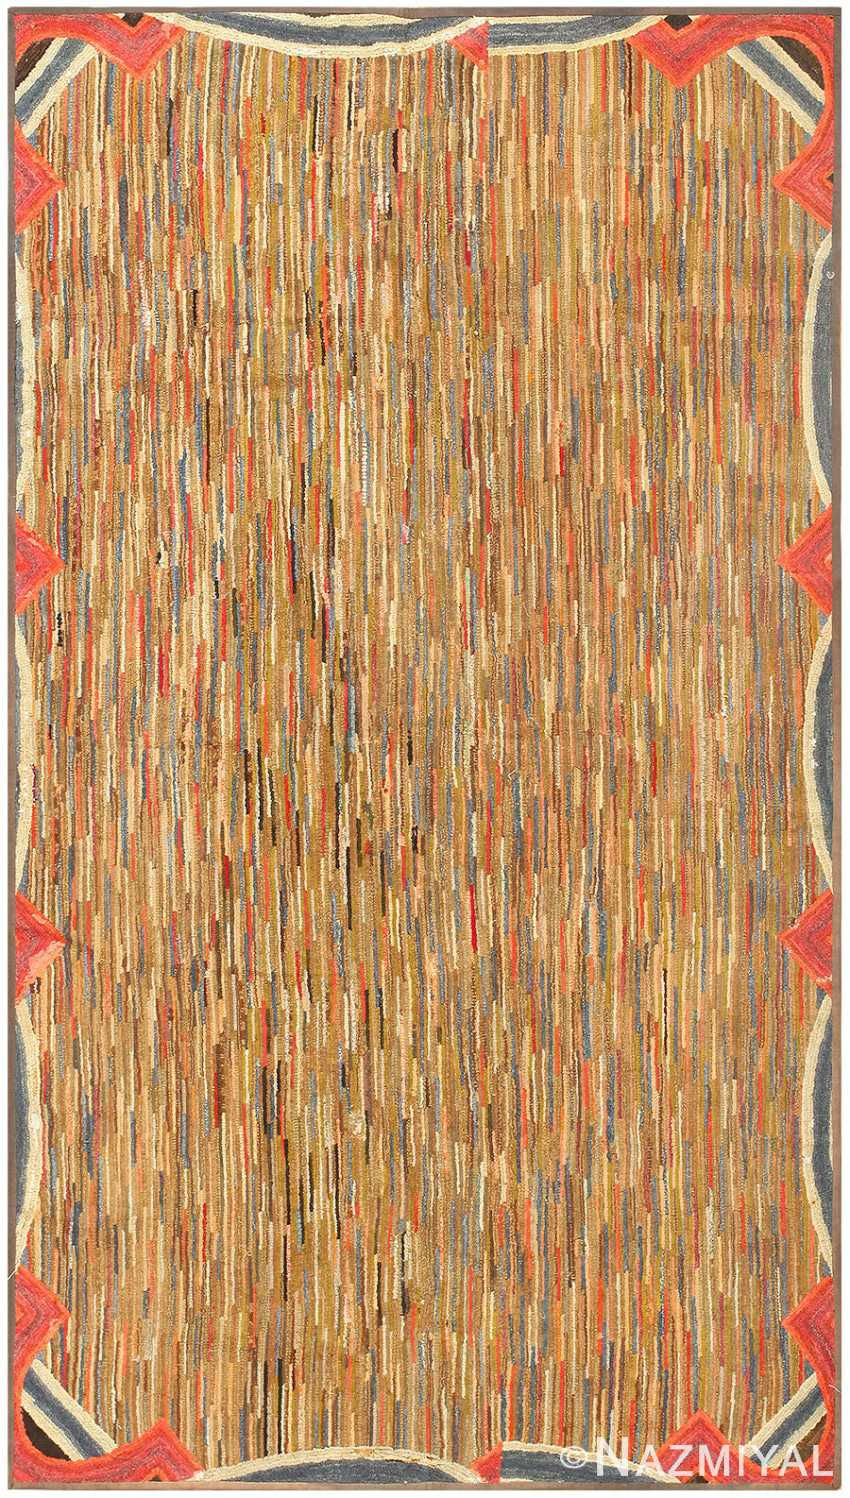 Antique American Hooked Rug 50289 Detail/Large View